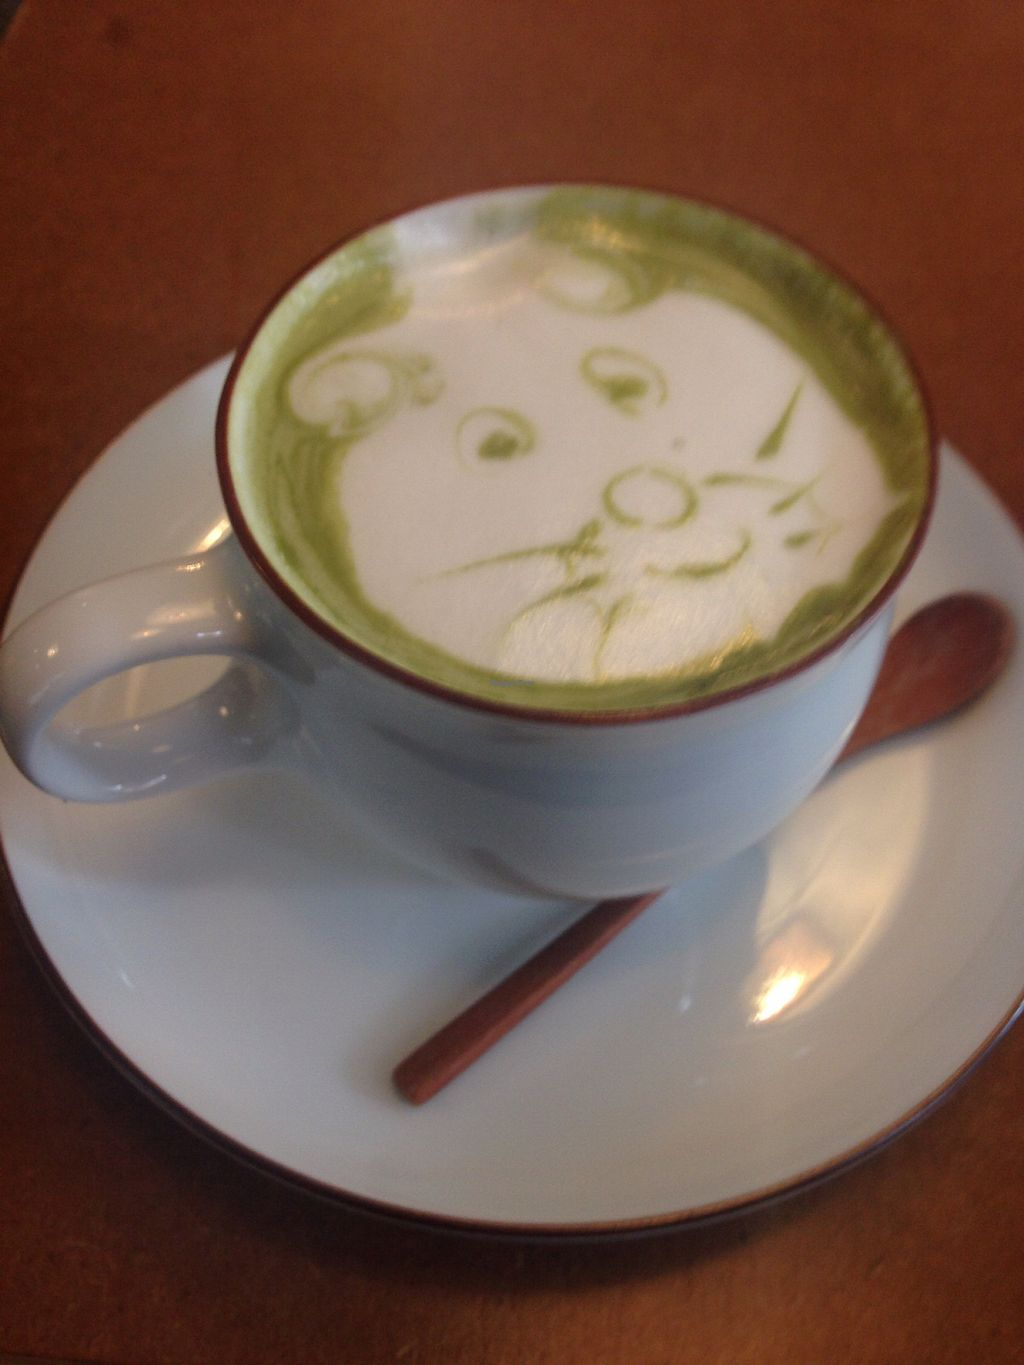 """Photo of MuYe - Mottainai Plant-Based Whole Food Cafe  by <a href=""""/members/profile/Lizjm"""">Lizjm</a> <br/>Matcha latte with homemade macadamia nut milk  <br/> February 1, 2018  - <a href='/contact/abuse/image/62356/353430'>Report</a>"""